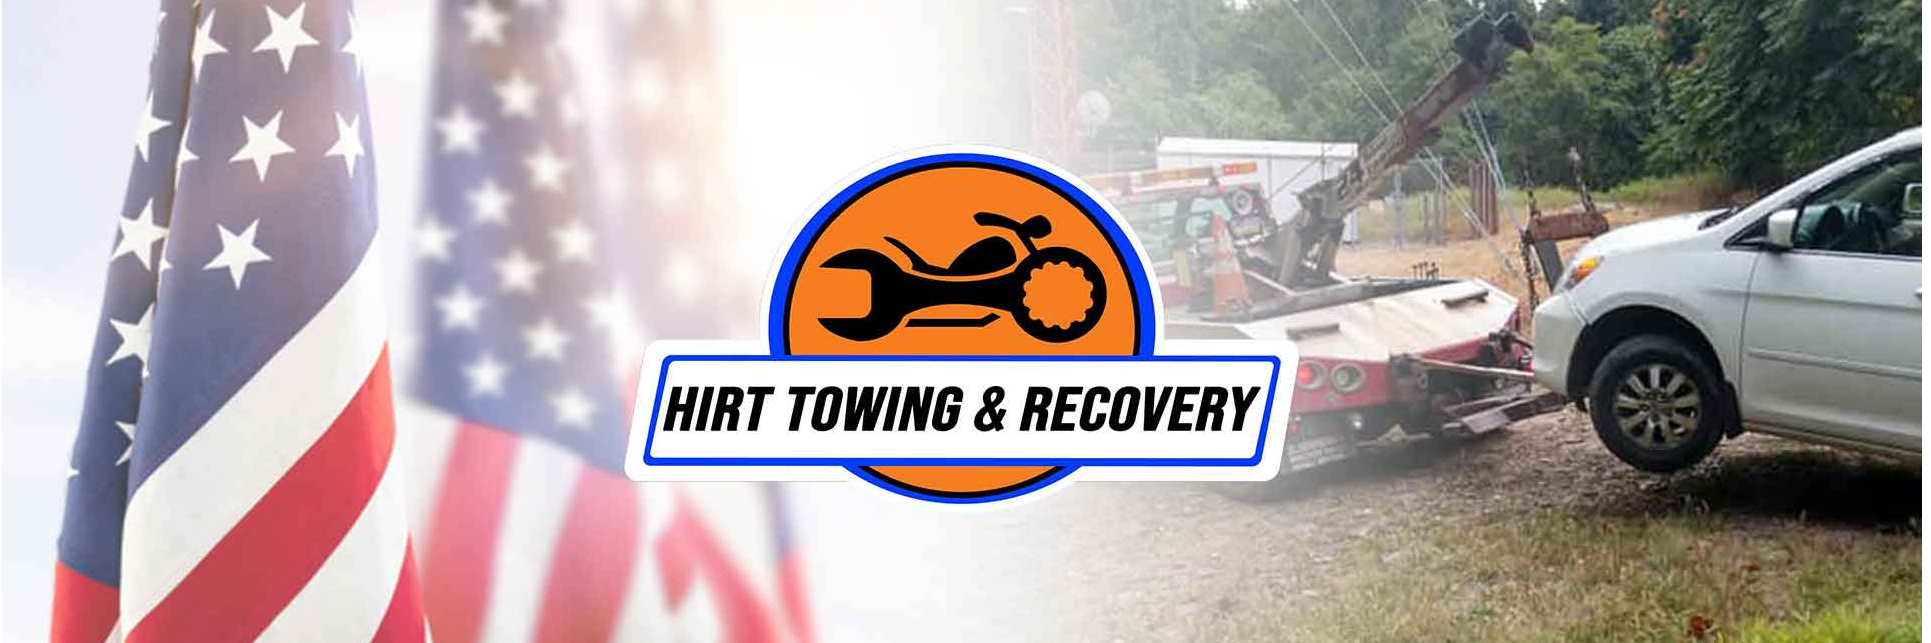 Hirt Powersports Towing And Recovery Towing.com Profile Banner